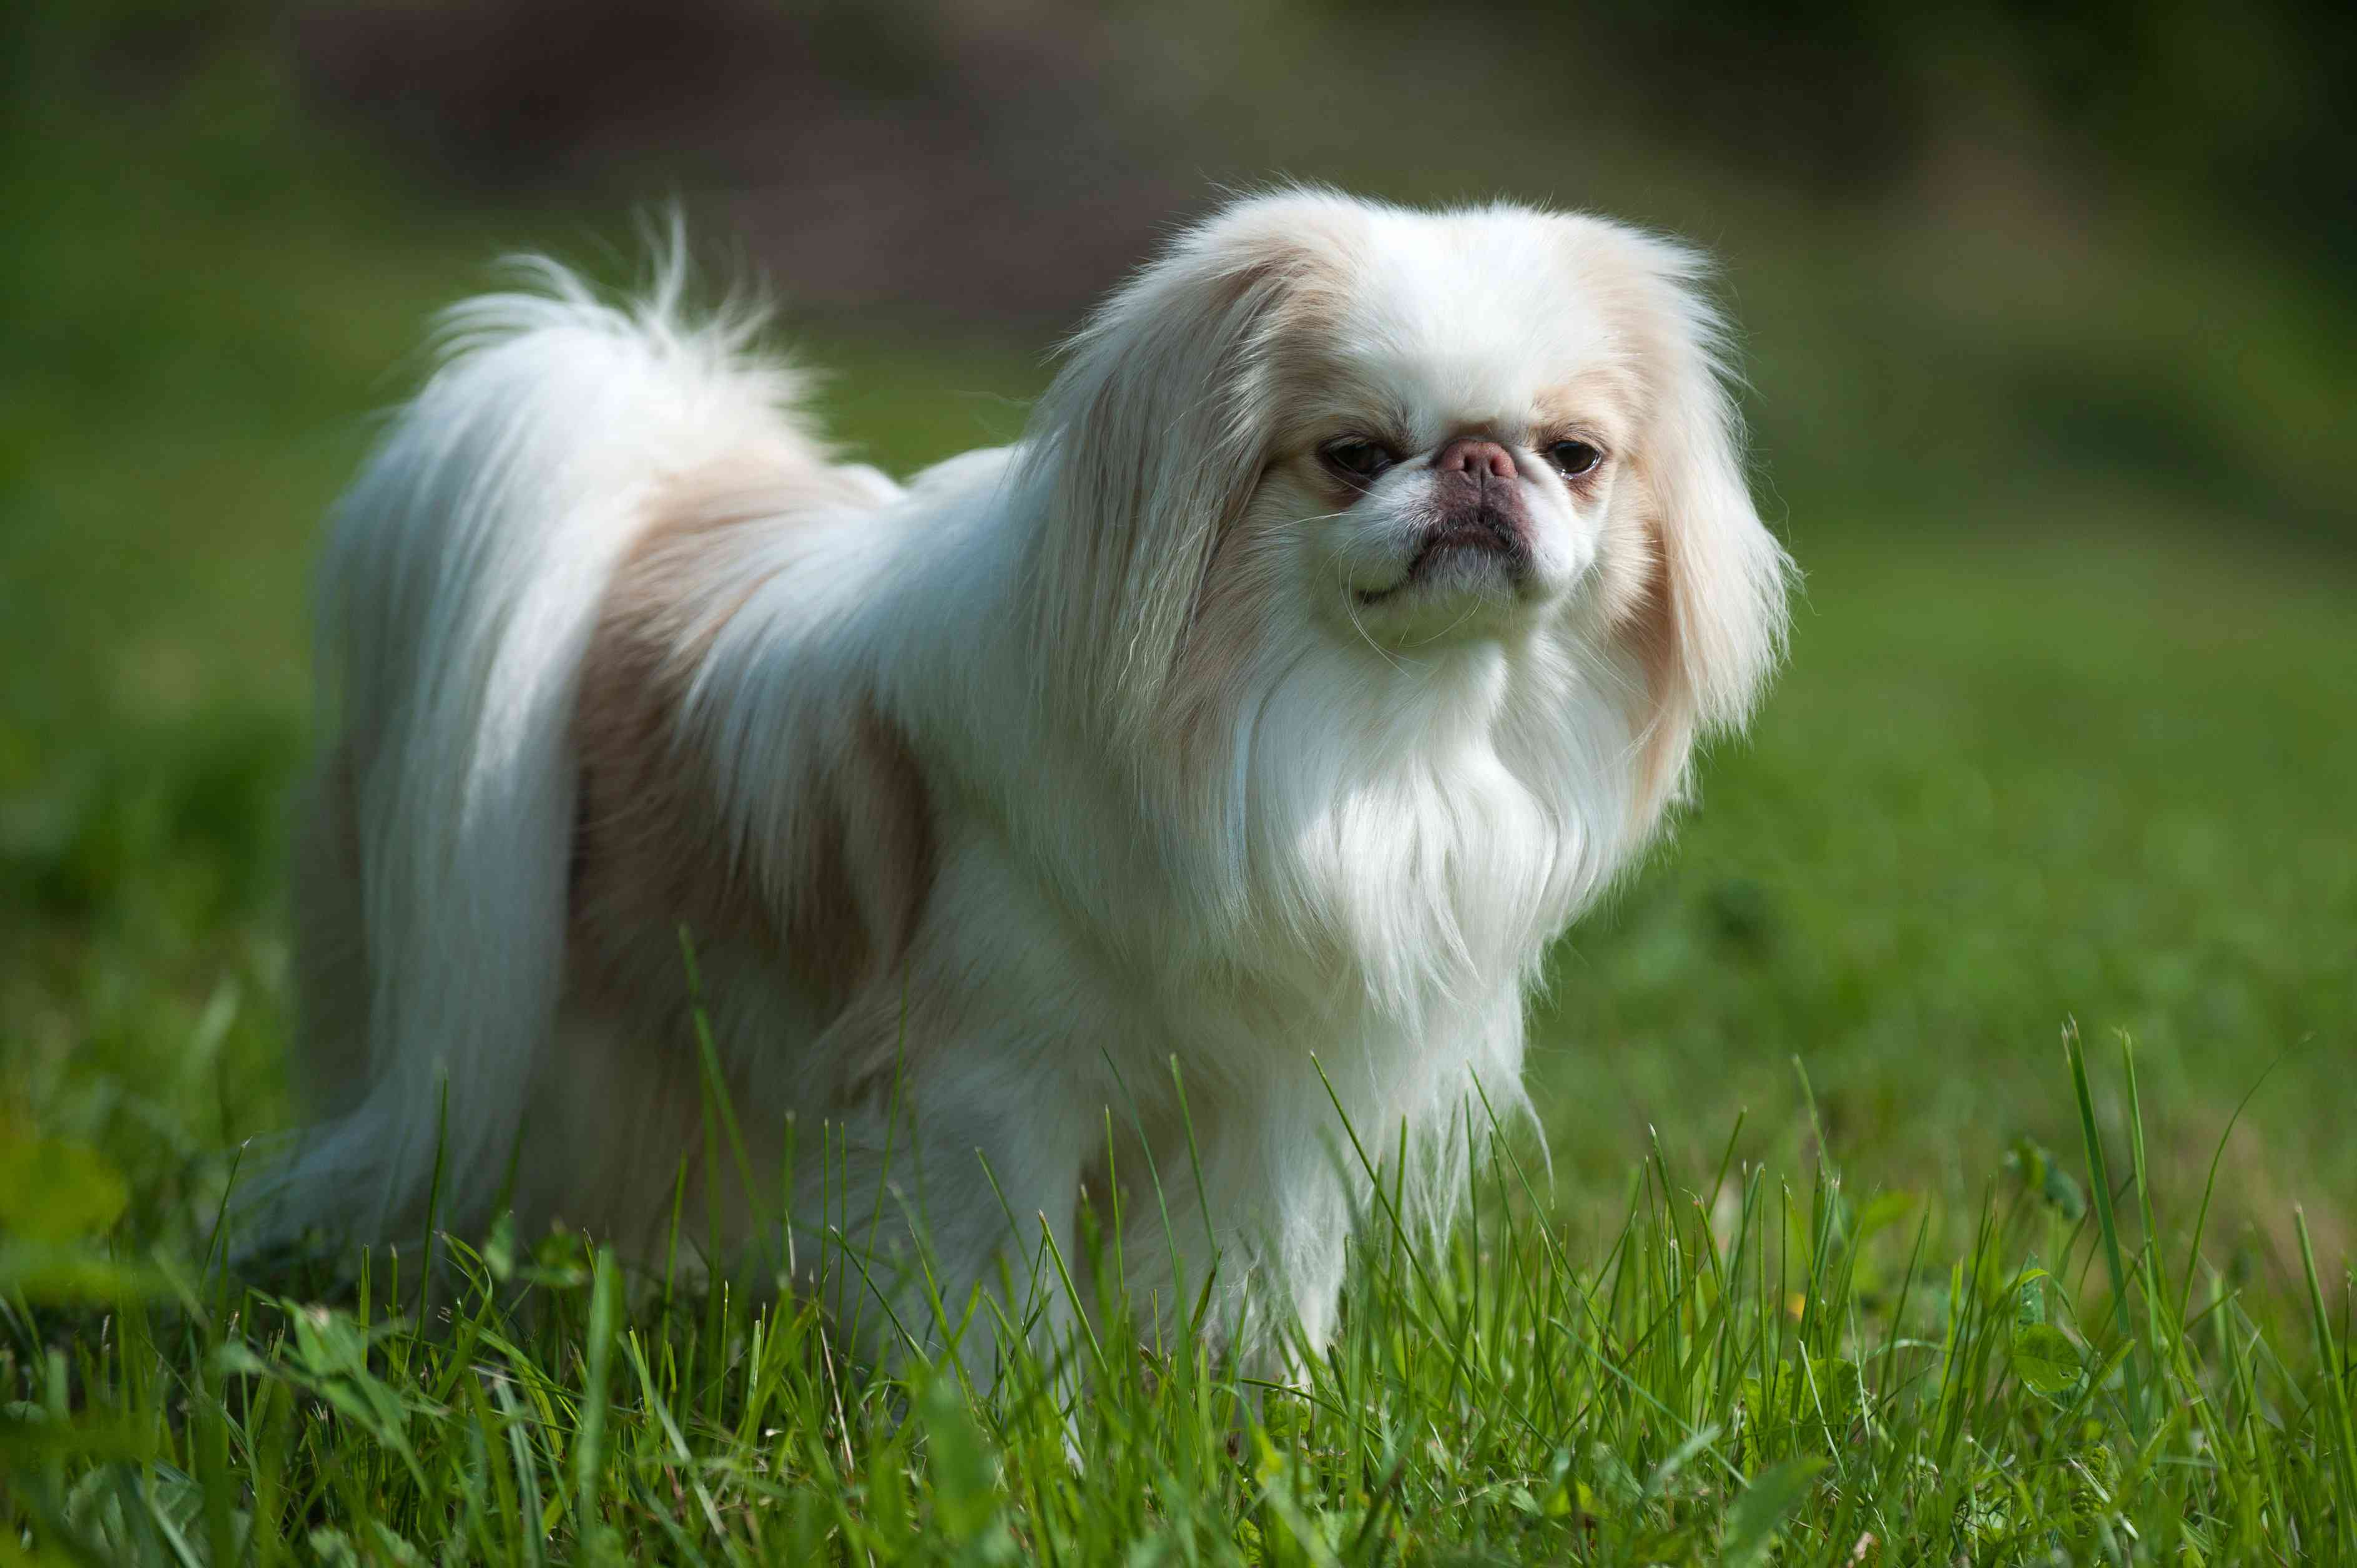 Brown and white Japanese Chin standing in green grass